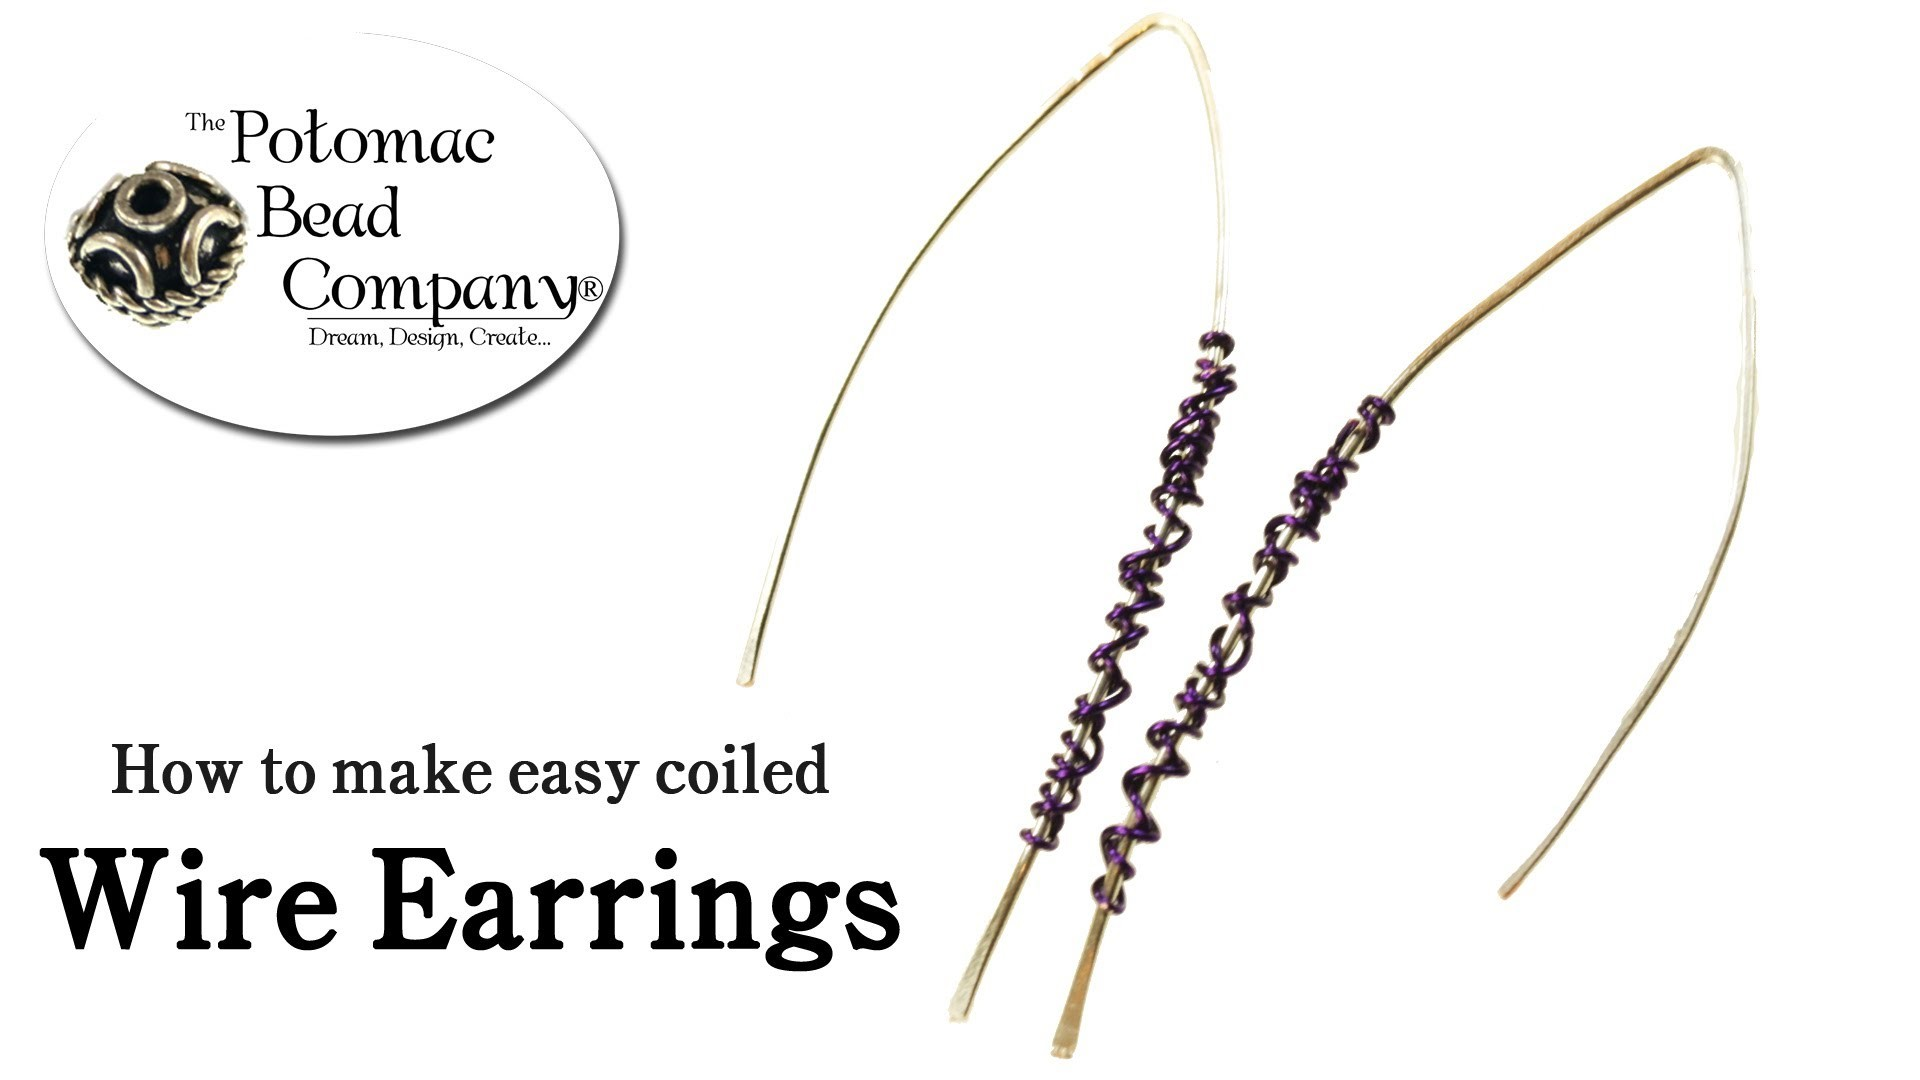 How to Make Easy Coiled Wire Earrings